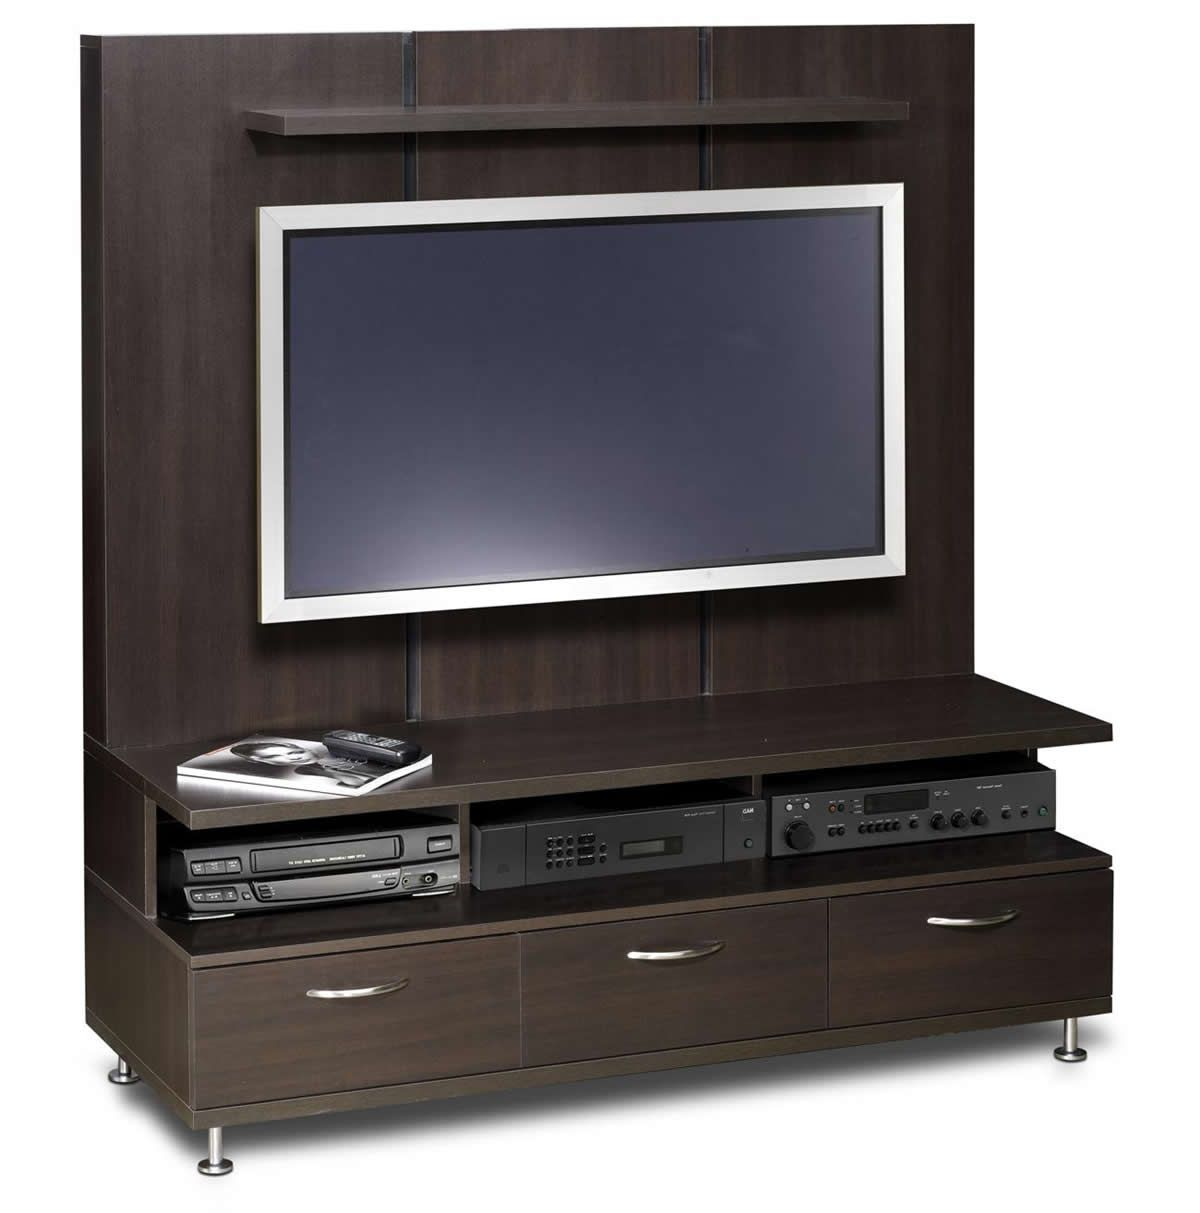 Tv Cabinets Designs Ideas An Interior Design Lcd Tv Cabinets  # Model Des Meuble D'Ecran Plasma